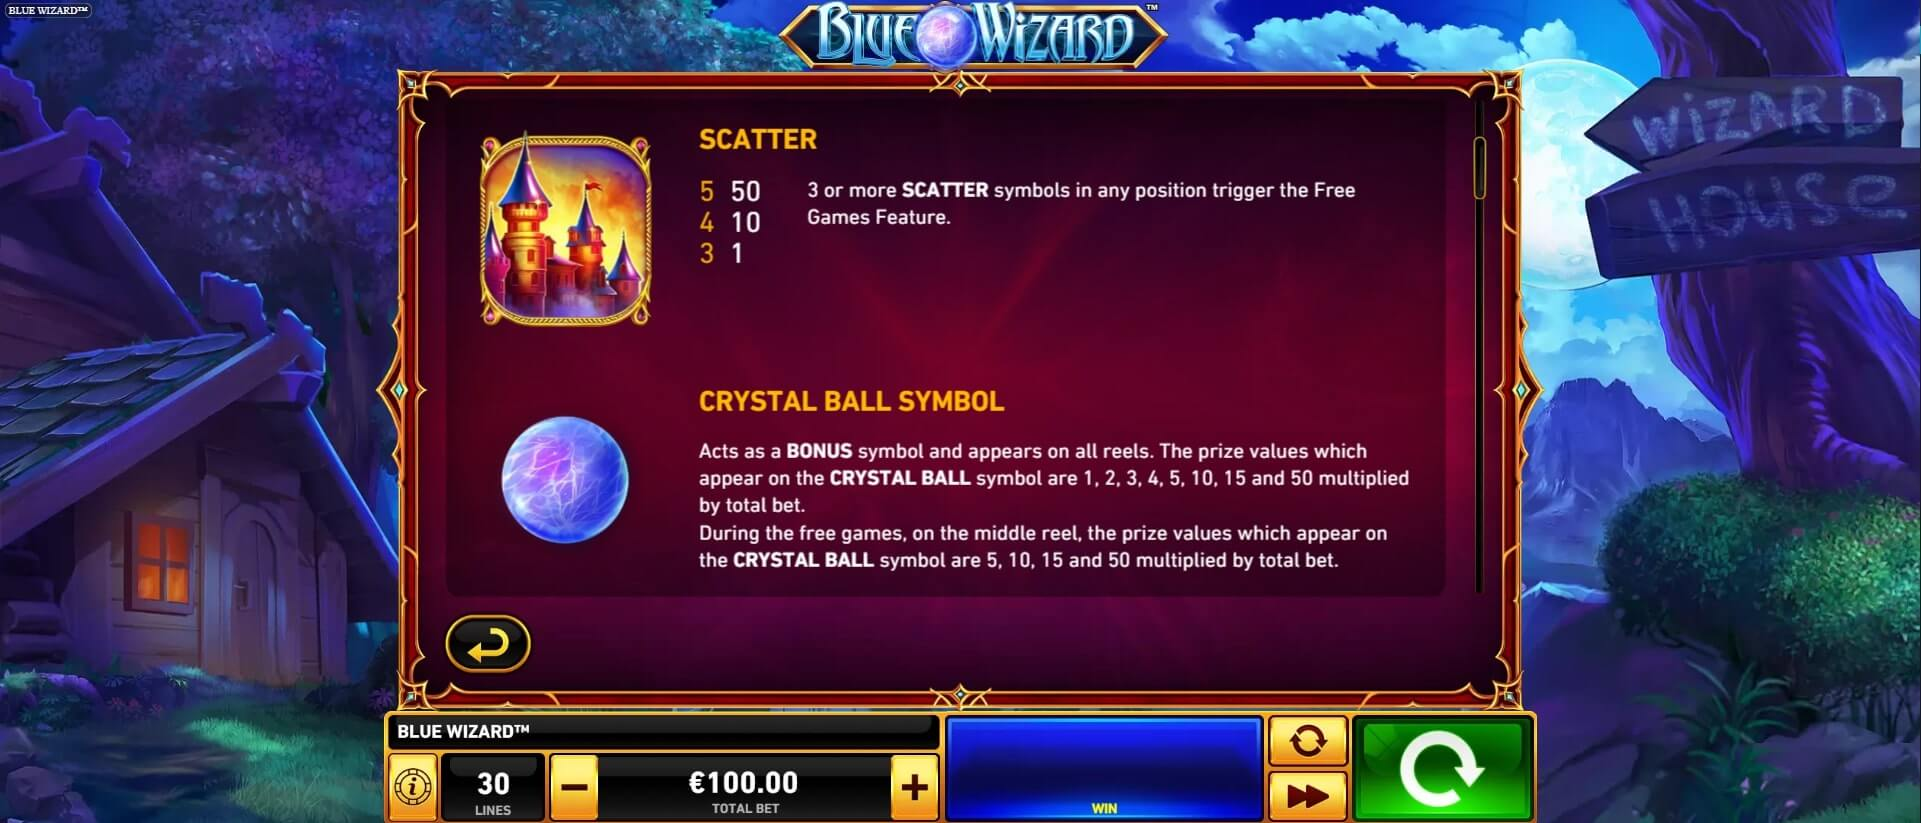 blue wizard scatter crystal ball